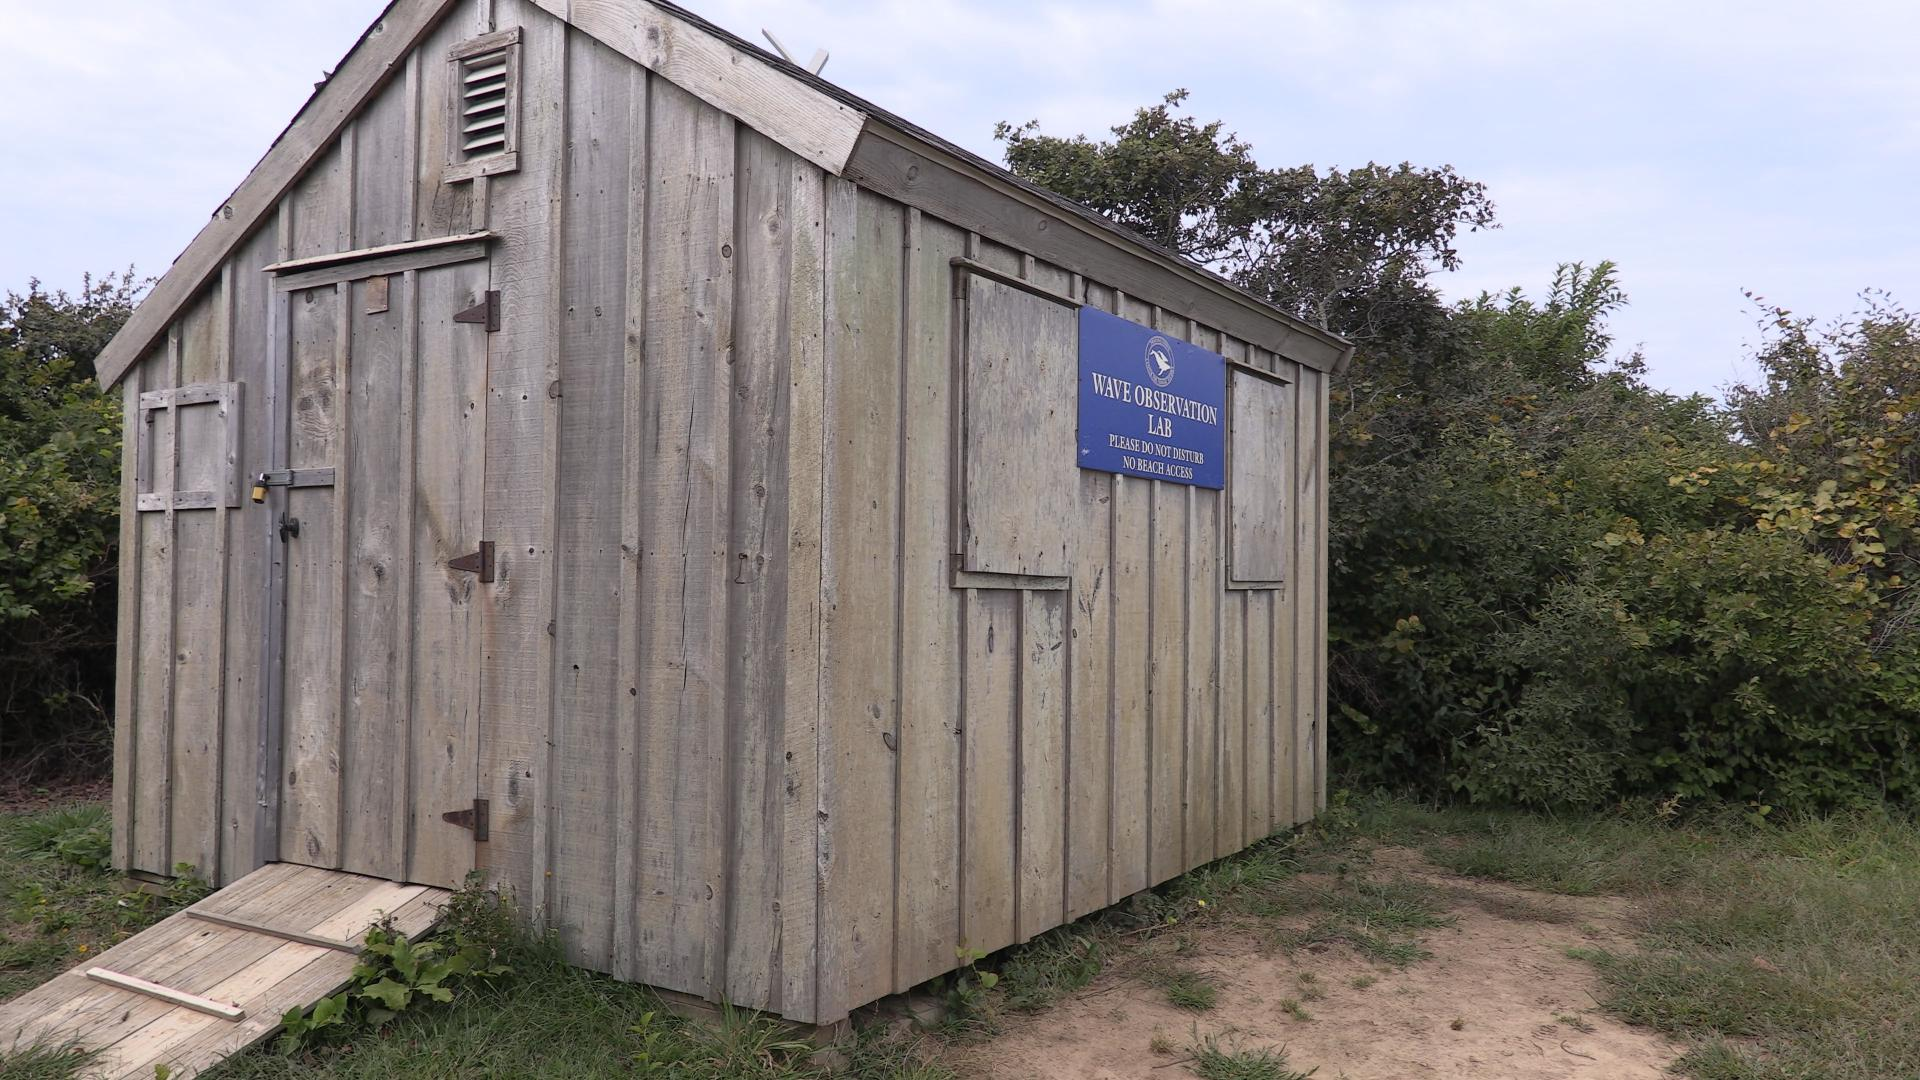 A wooden shed with a blue sign saying Cape Cod Wave Laboratory on a dirt cliff.